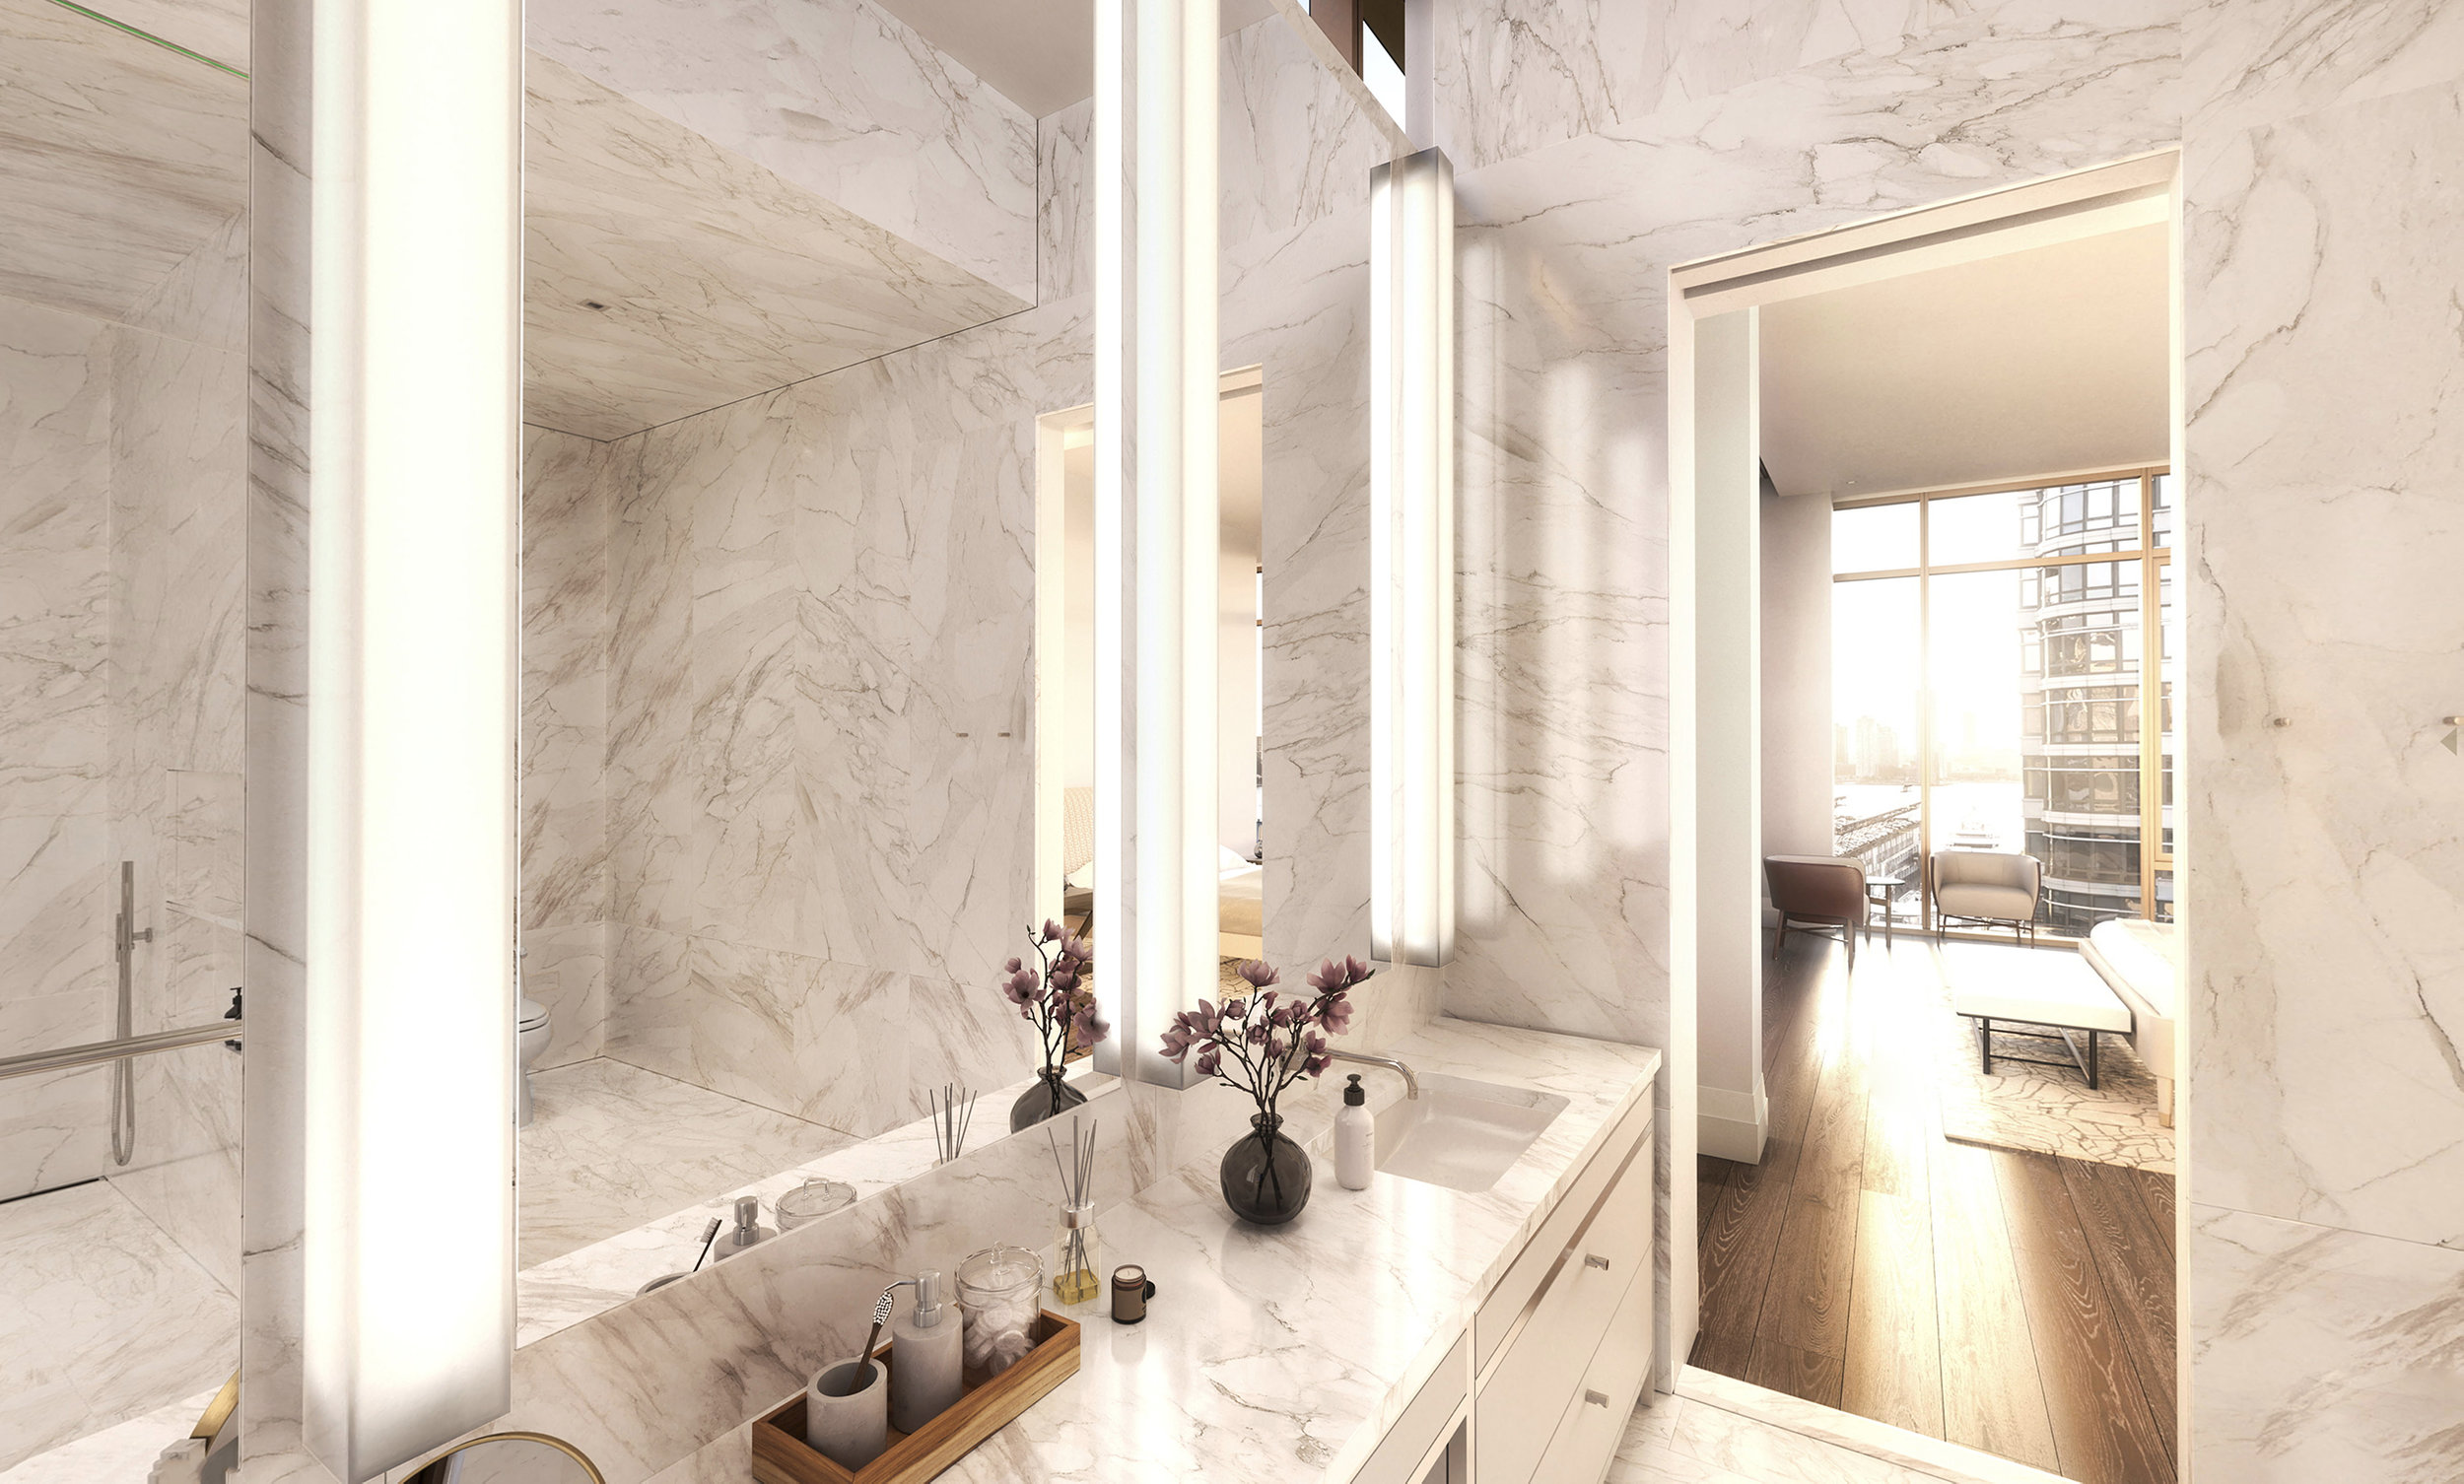 IMPECCABLY DETAILED BATHROOMS - Bathrooms are clad in floor-to-ceiling honed full-slab Ariston marble surfaces, heated floors, and accentuated with Vola hardware throughout.